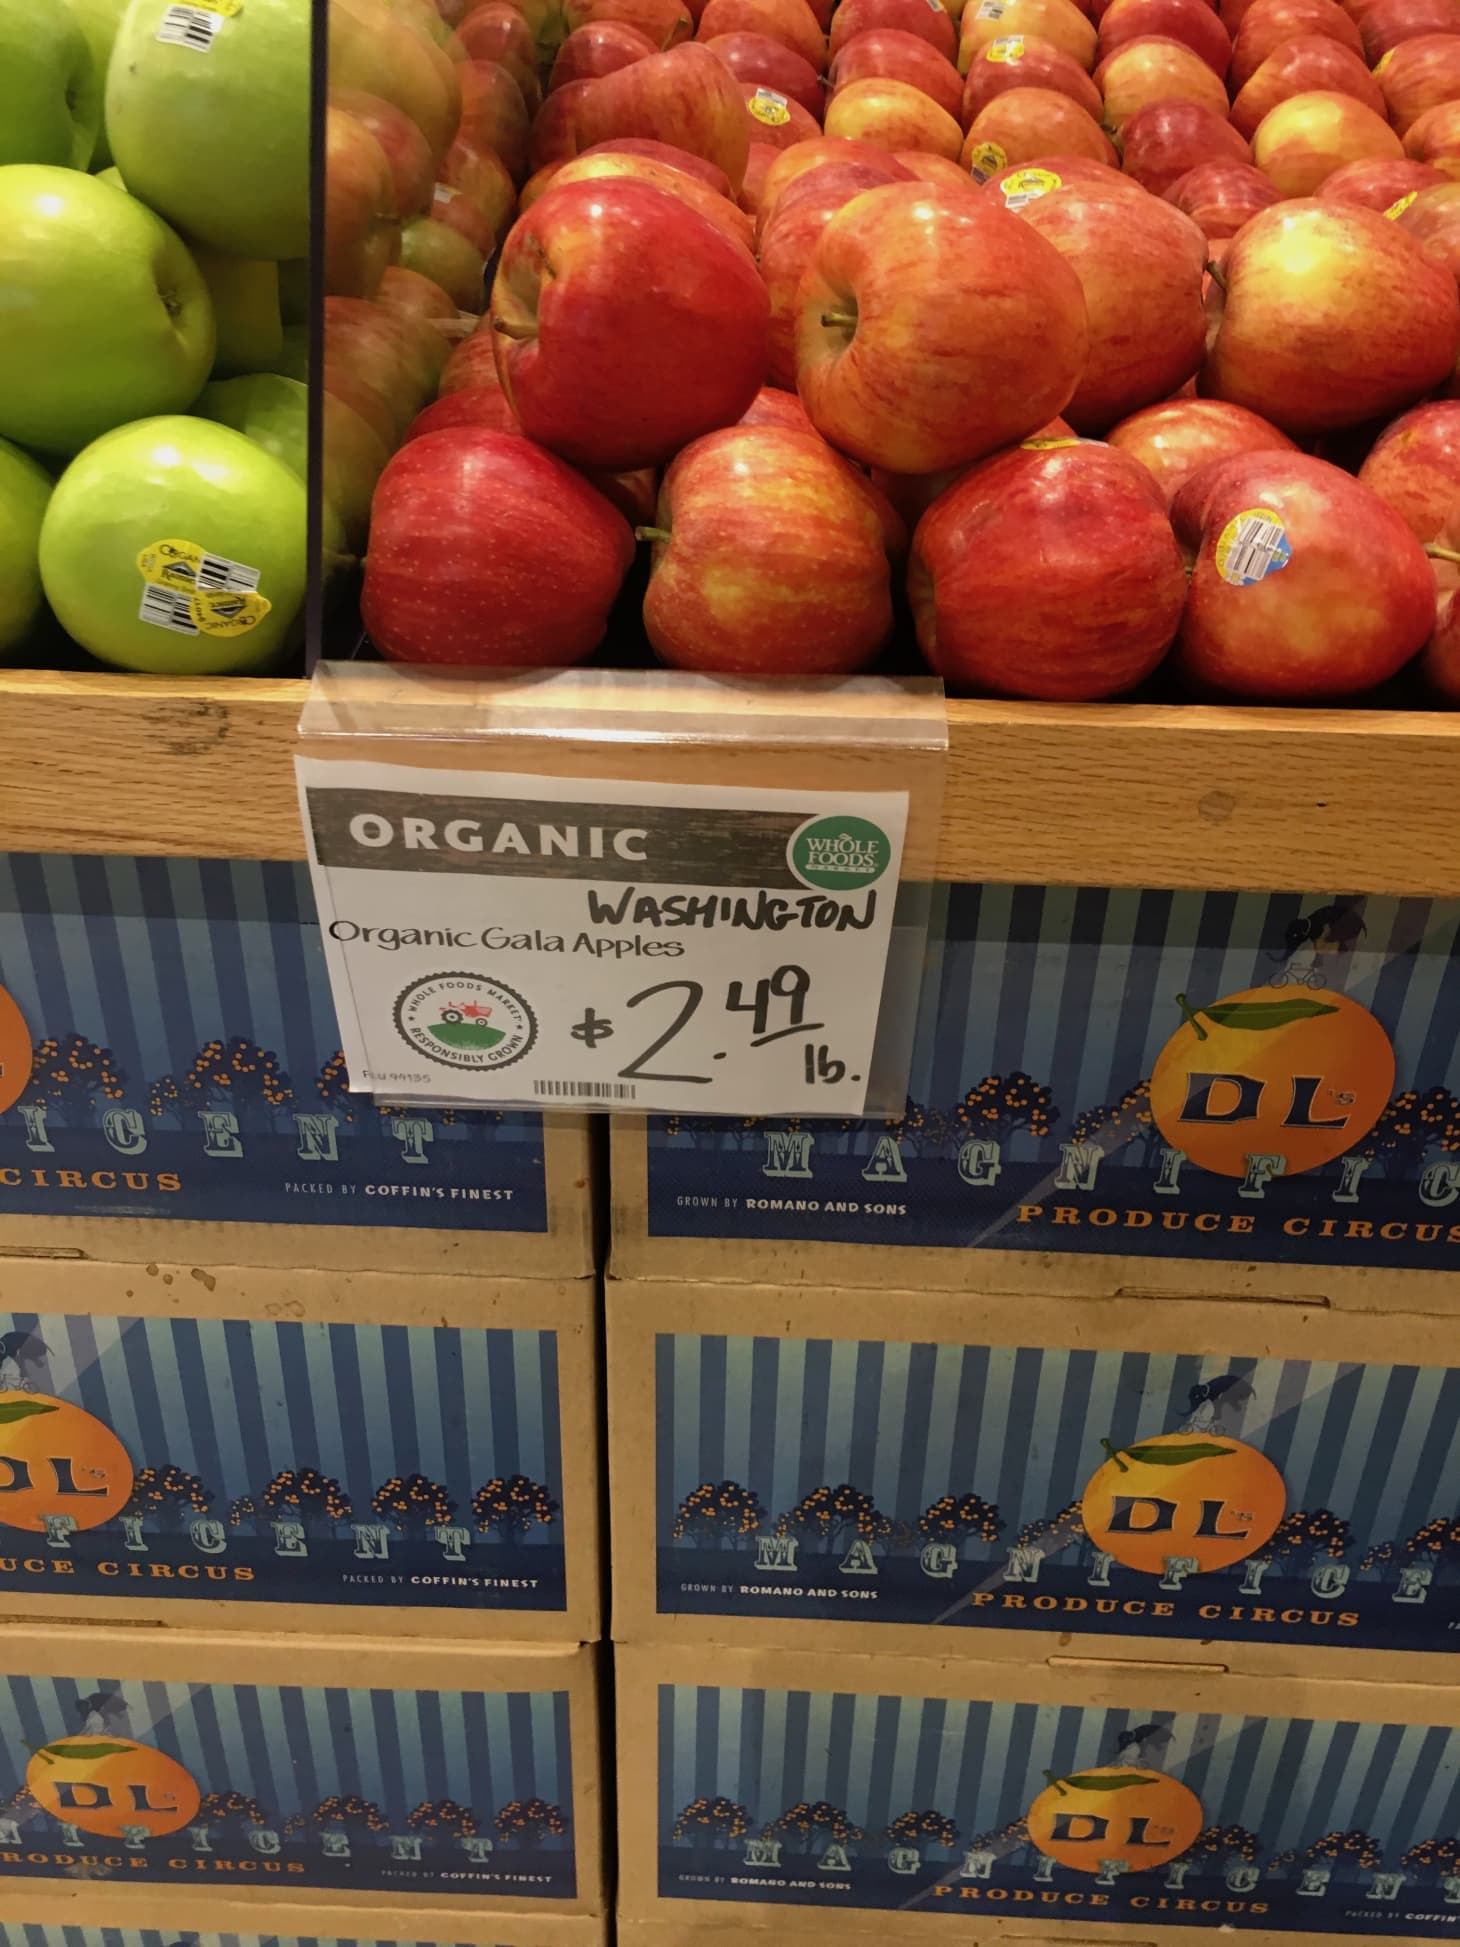 10 Things That Are (Much) Cheaper at 365 than Whole Foods